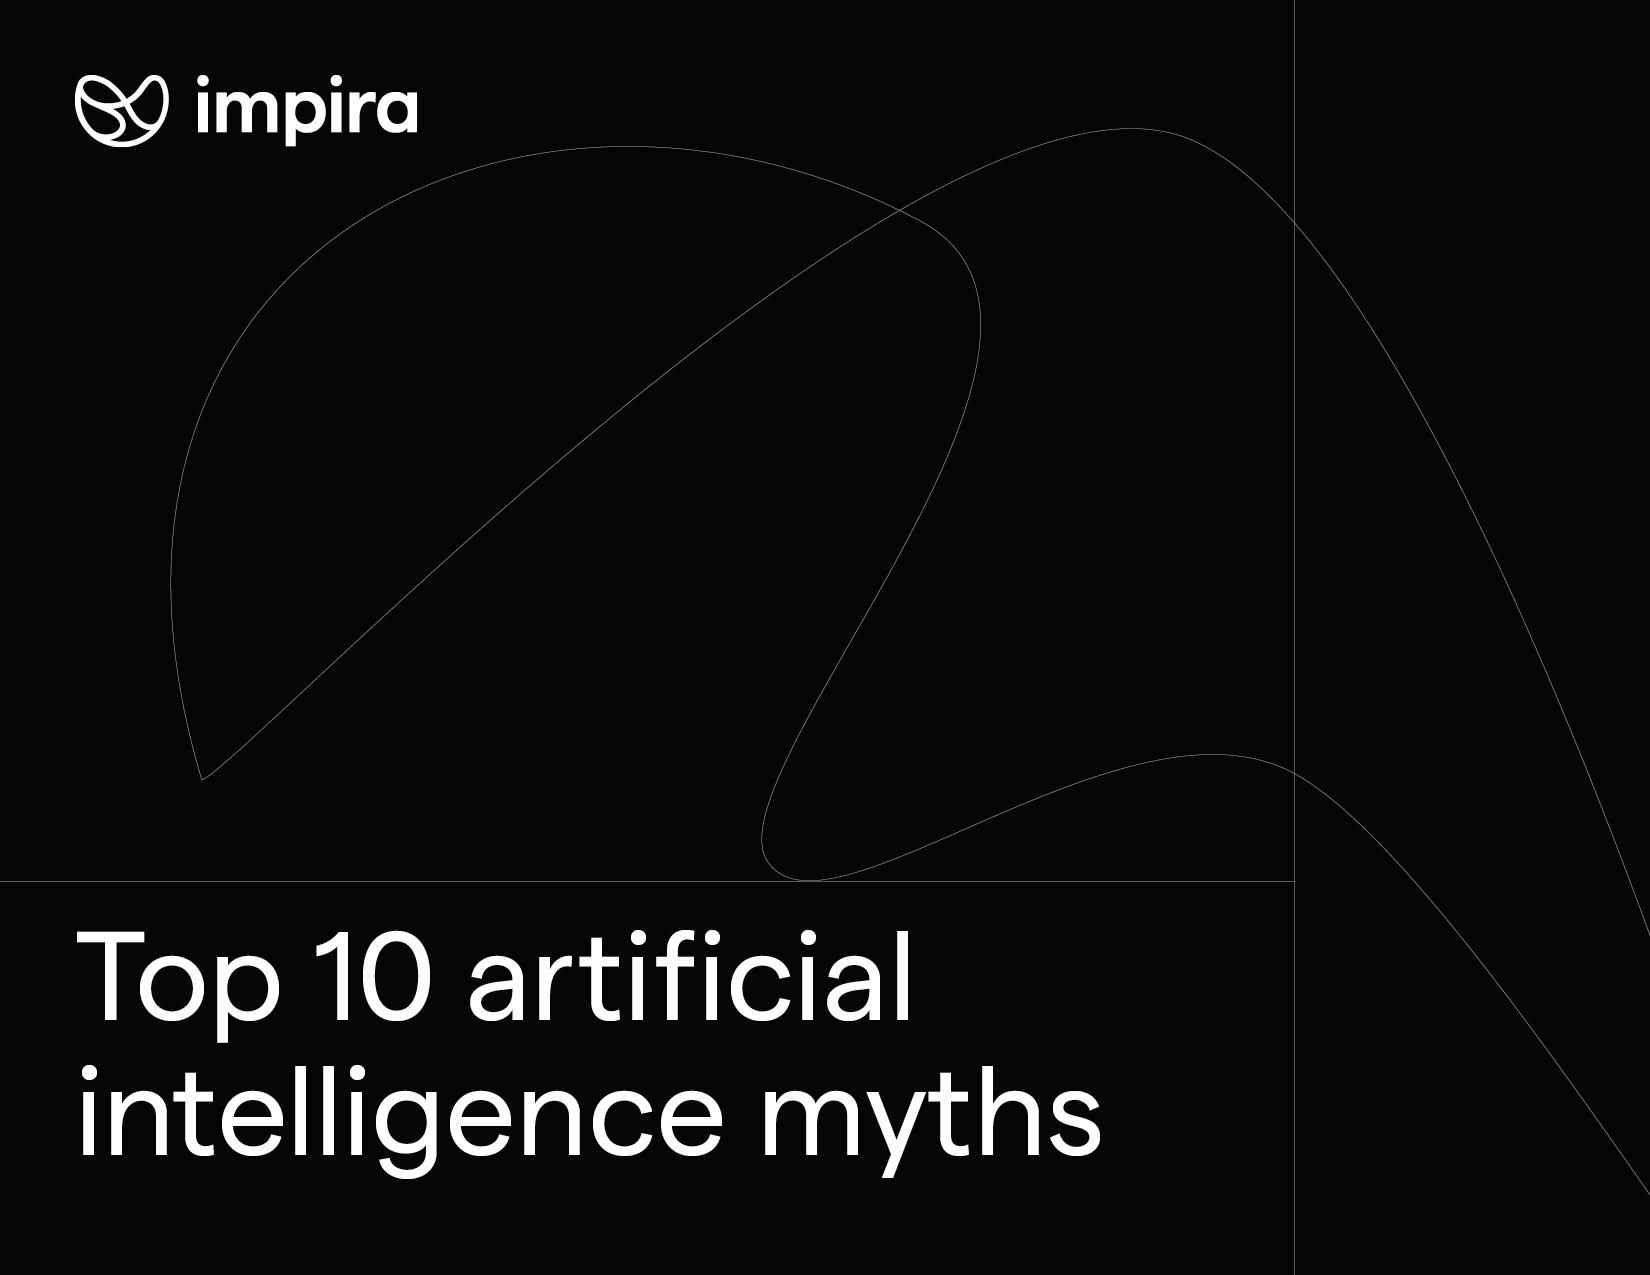 Top 10 artificial intelligence myths